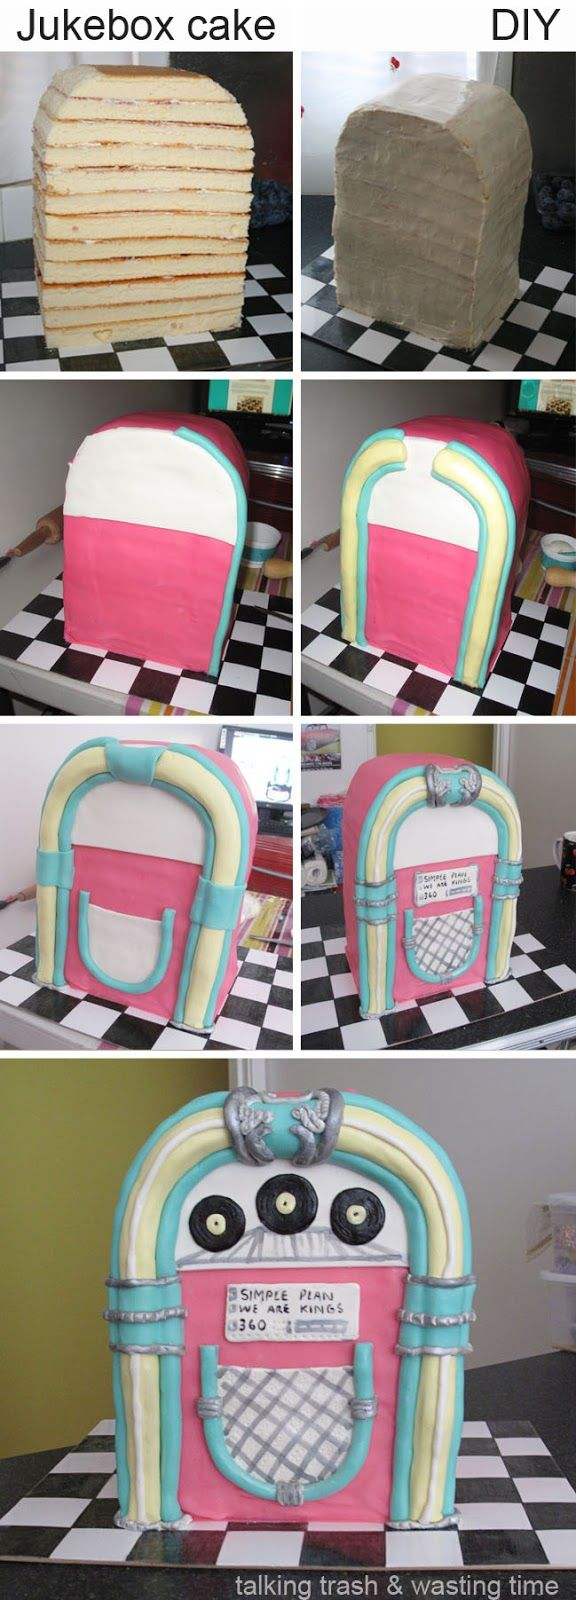 Jukebox cake. . . That's just too cool I want to make this someday :D